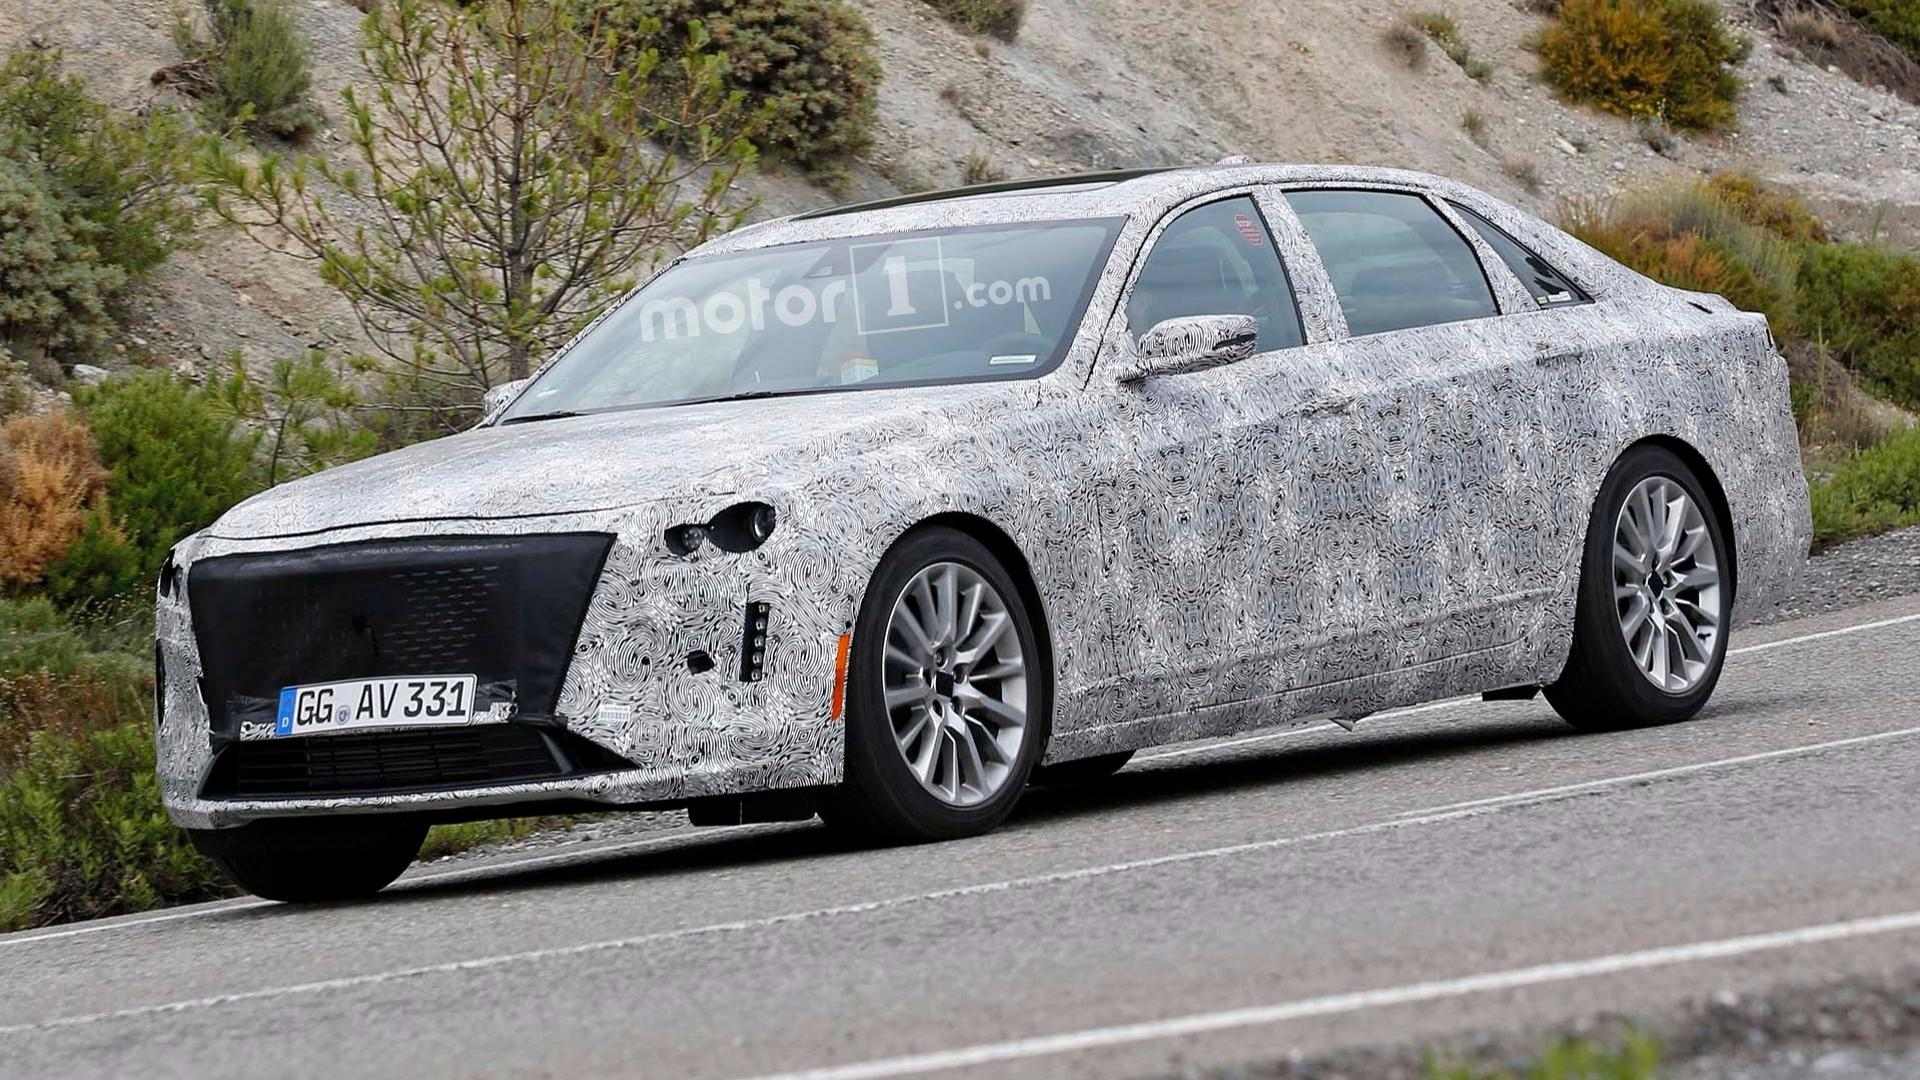 Cadillac CT6 Spy Photos Suggest Styling Cues From Escala ...